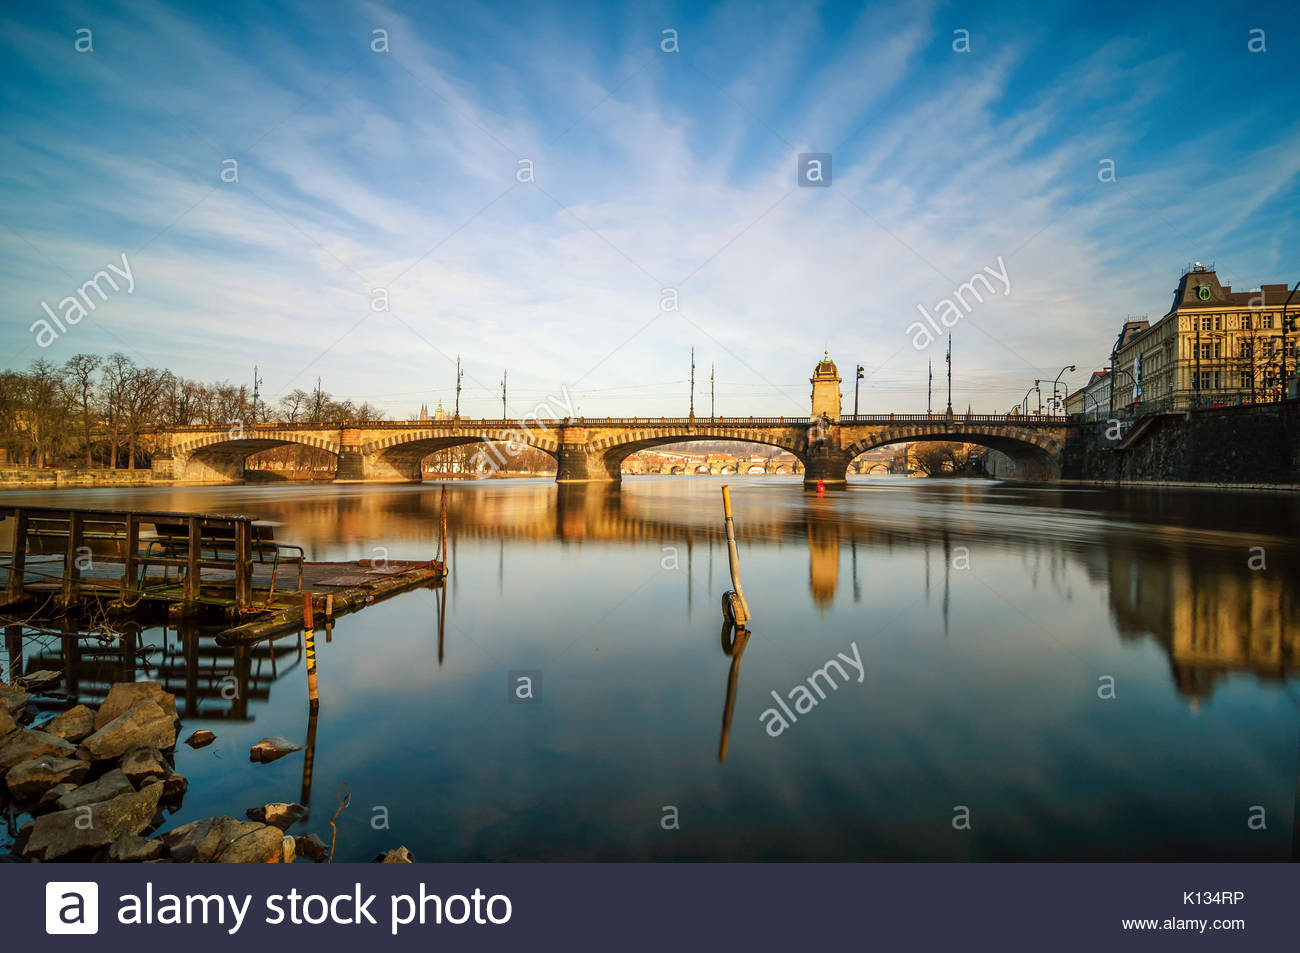 Amazing sunrise view at Vltava river bridge and boat with clear water reflection. Typical Prague sunny morning. - Stock Image